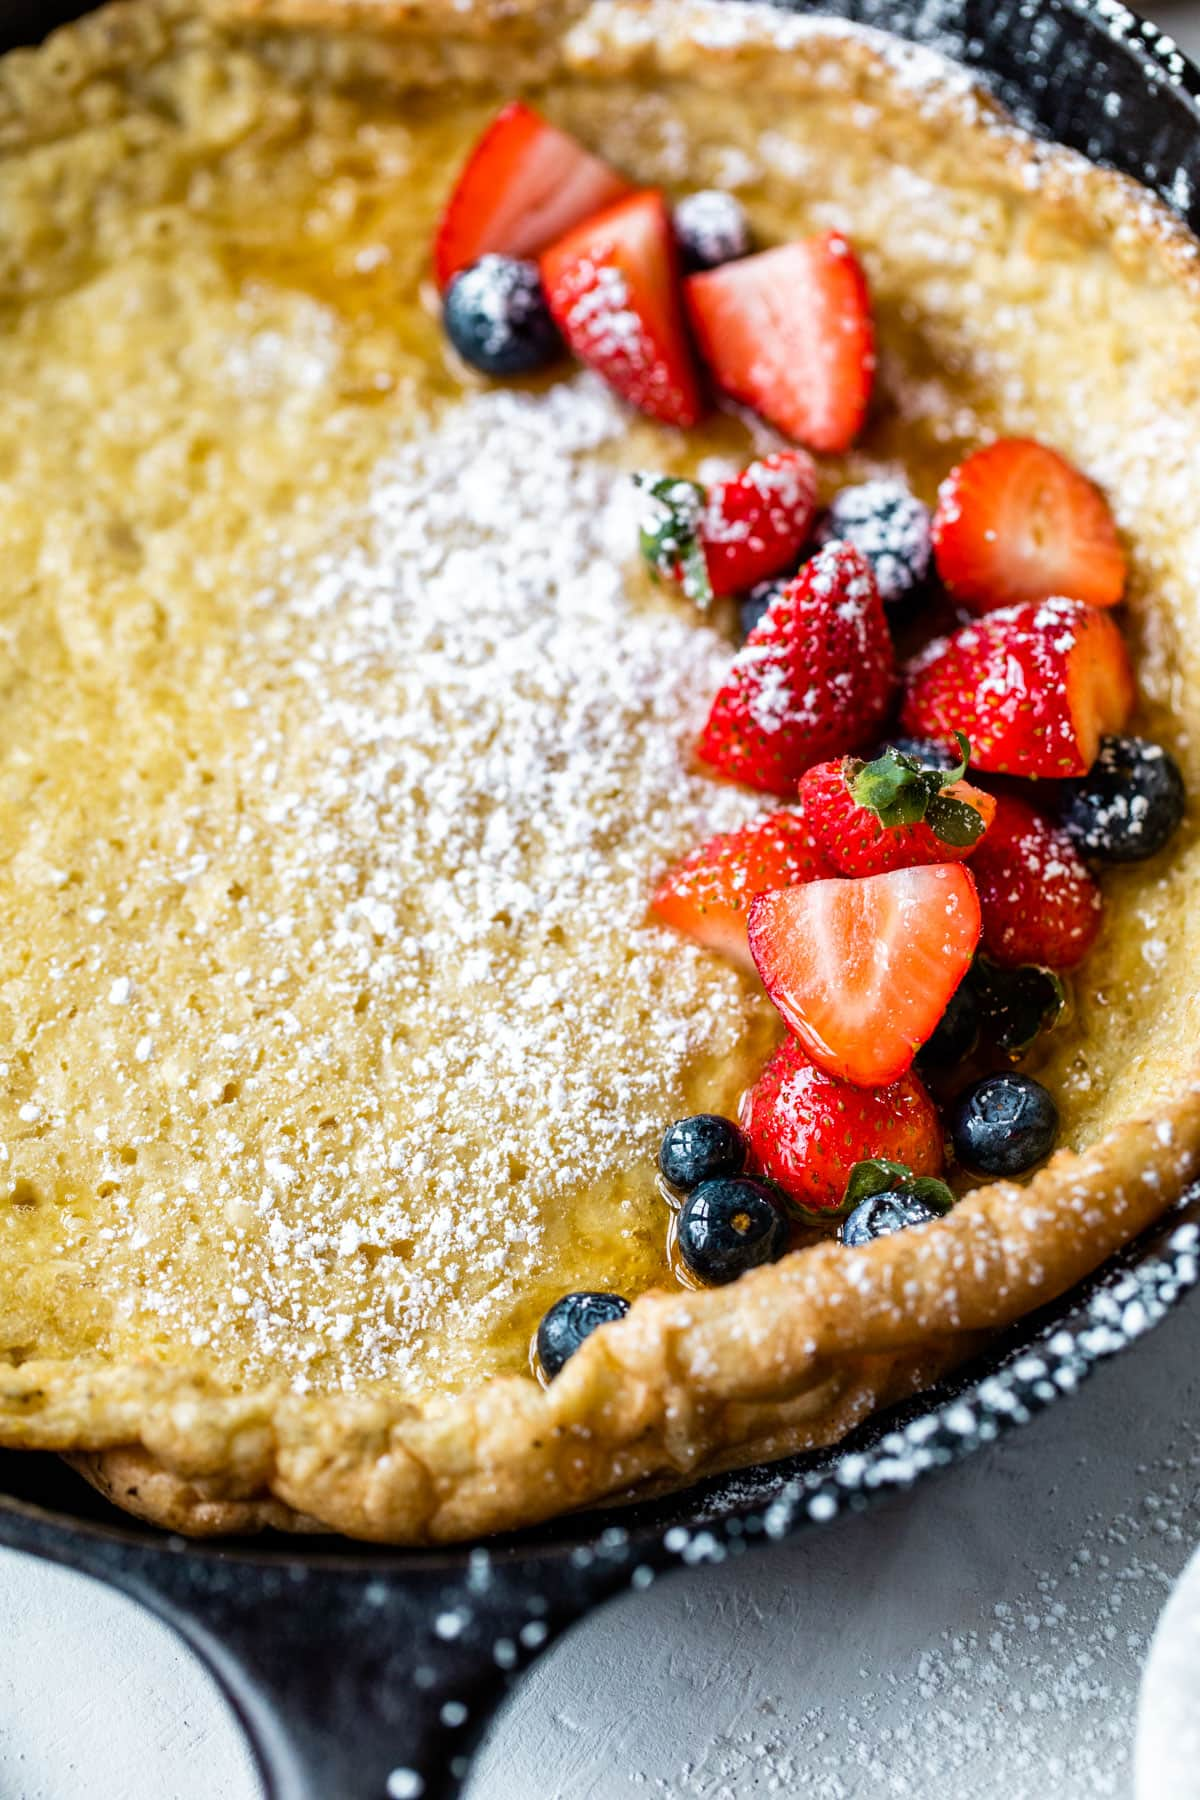 German Oven Pancakes with Blueberry and Lemon—Only 5 minutes to prep and a family favorite! @wellplated